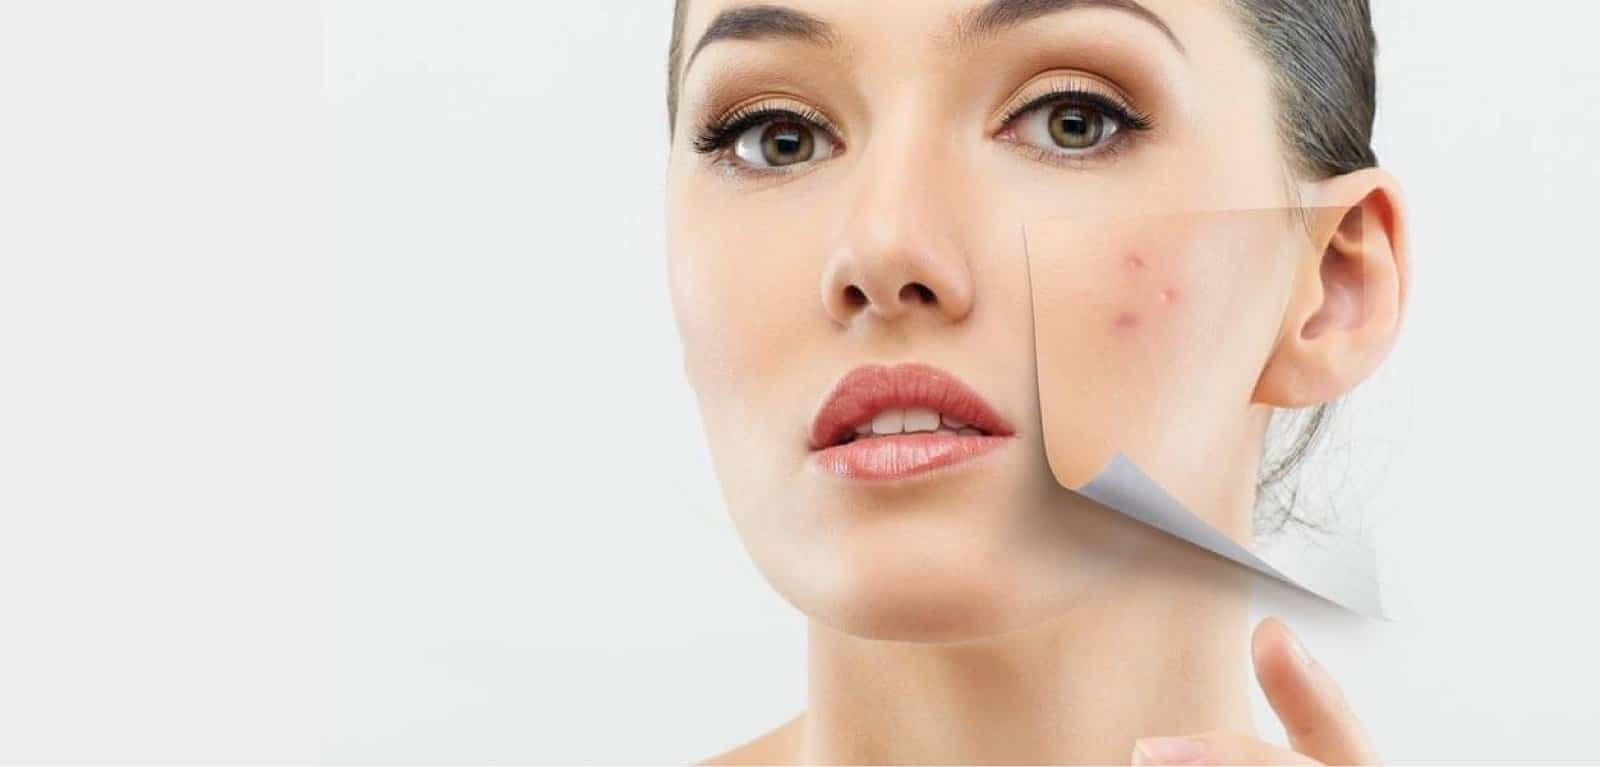 Remedies and tips for acne from The Best salon in Lahore